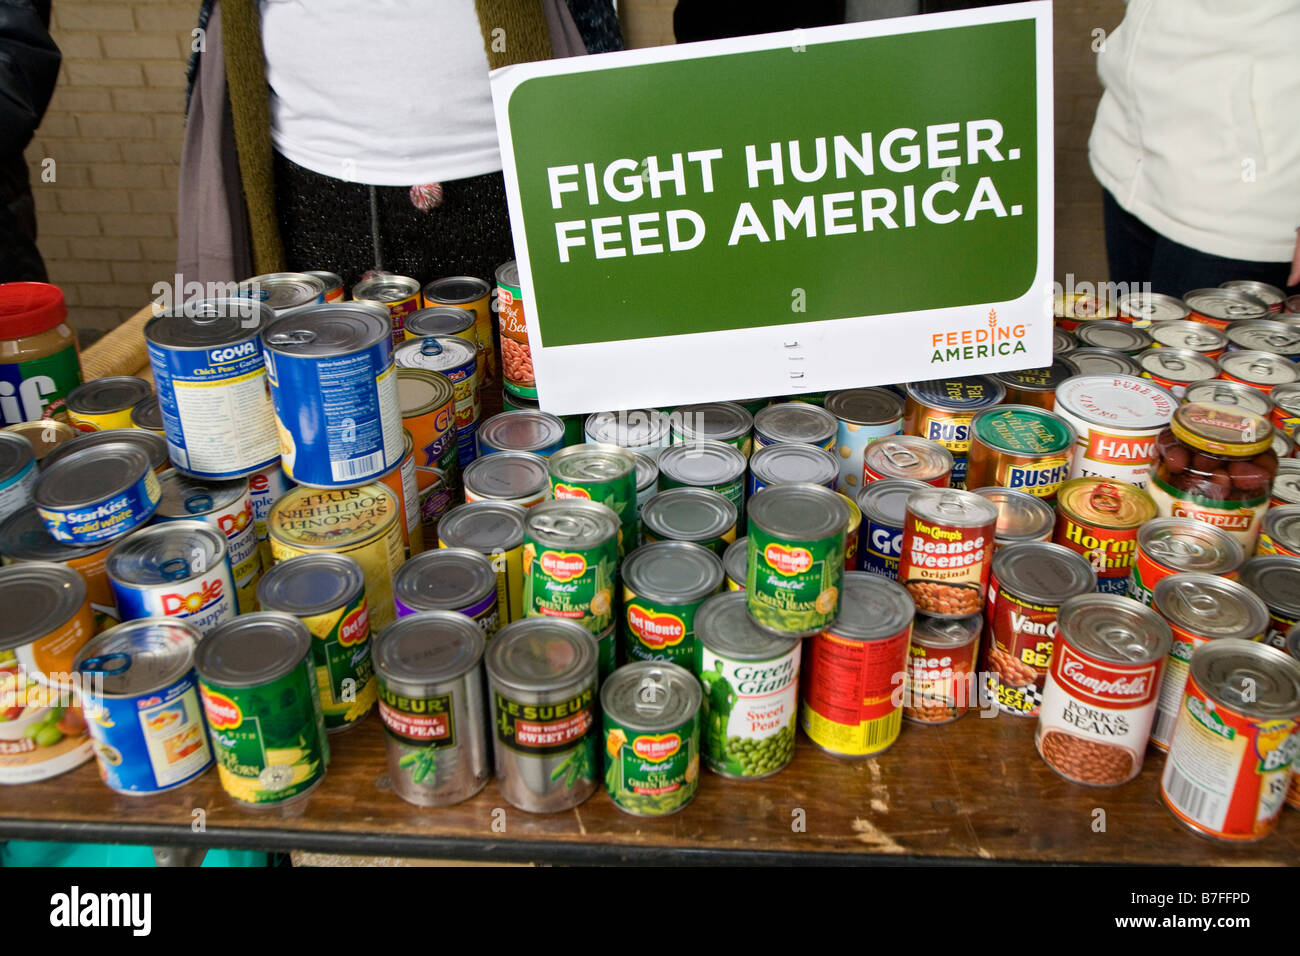 Volunteers Collect Canned Goods for Food Banks - Stock Image